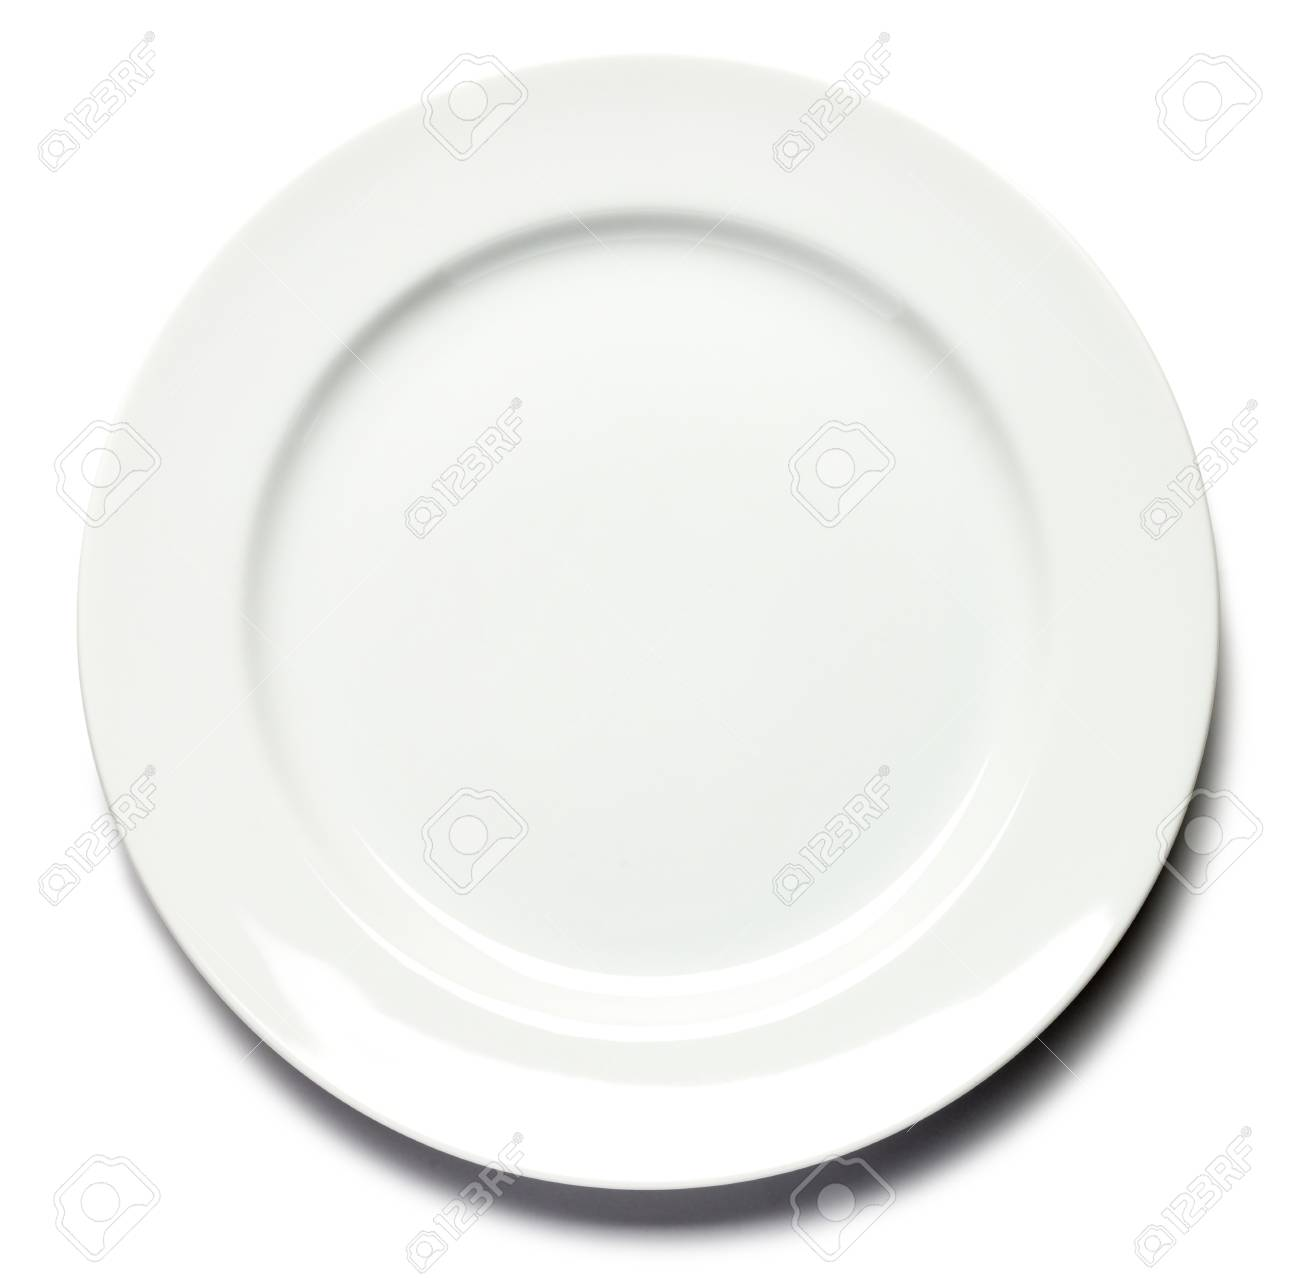 Dinner Plate On White Background Stock Photo Picture And Royalty Free Image Image 31759914